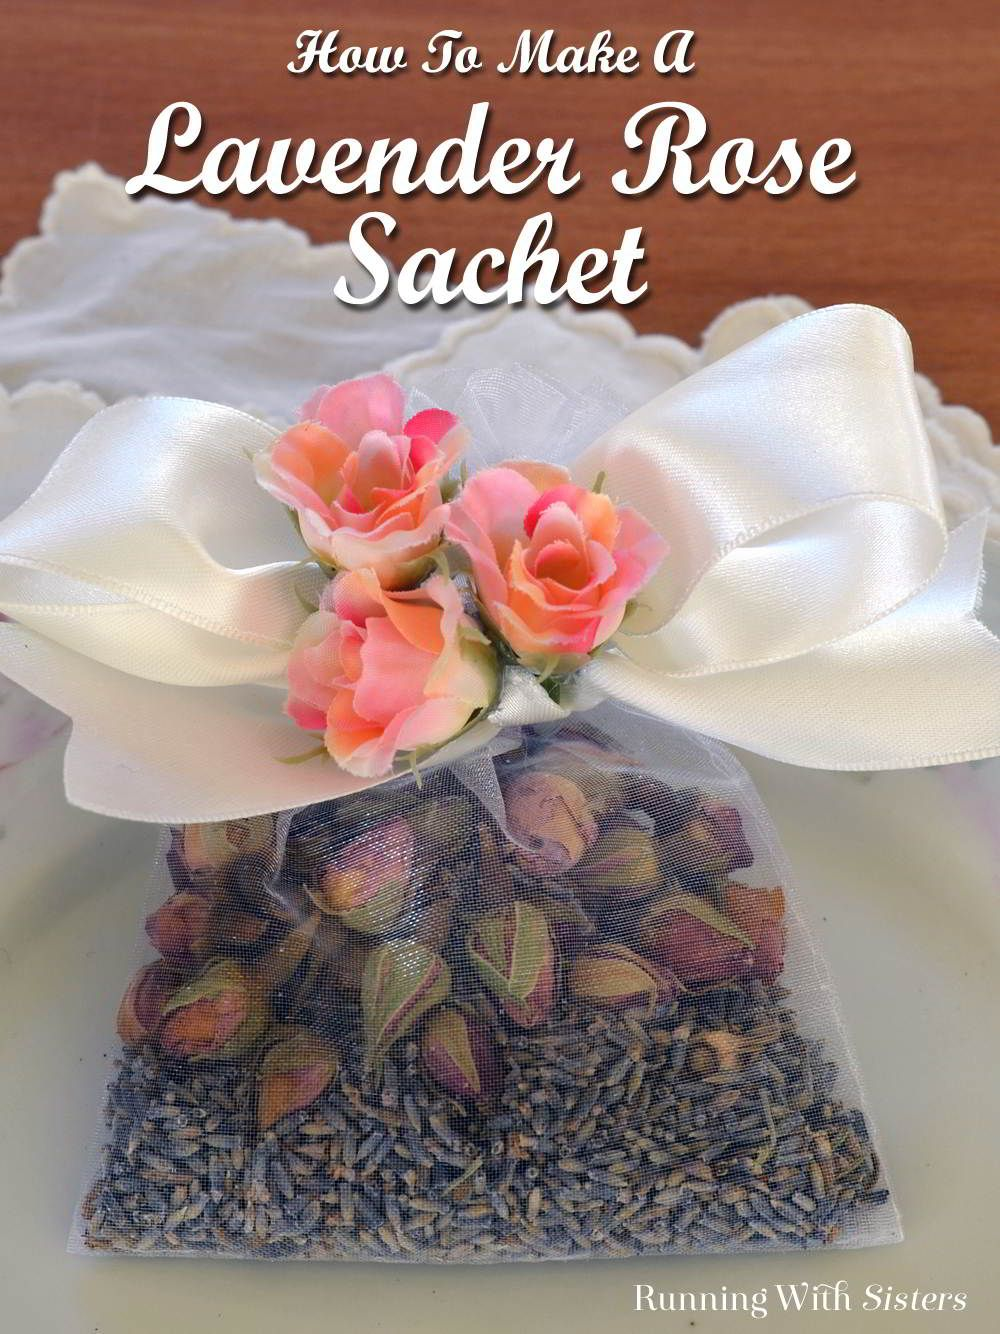 This Easy Lavender Rose Sachet Is So Fast To Make Just Fill An Organdy Favor Bag With Dried Buds And Top Pretty